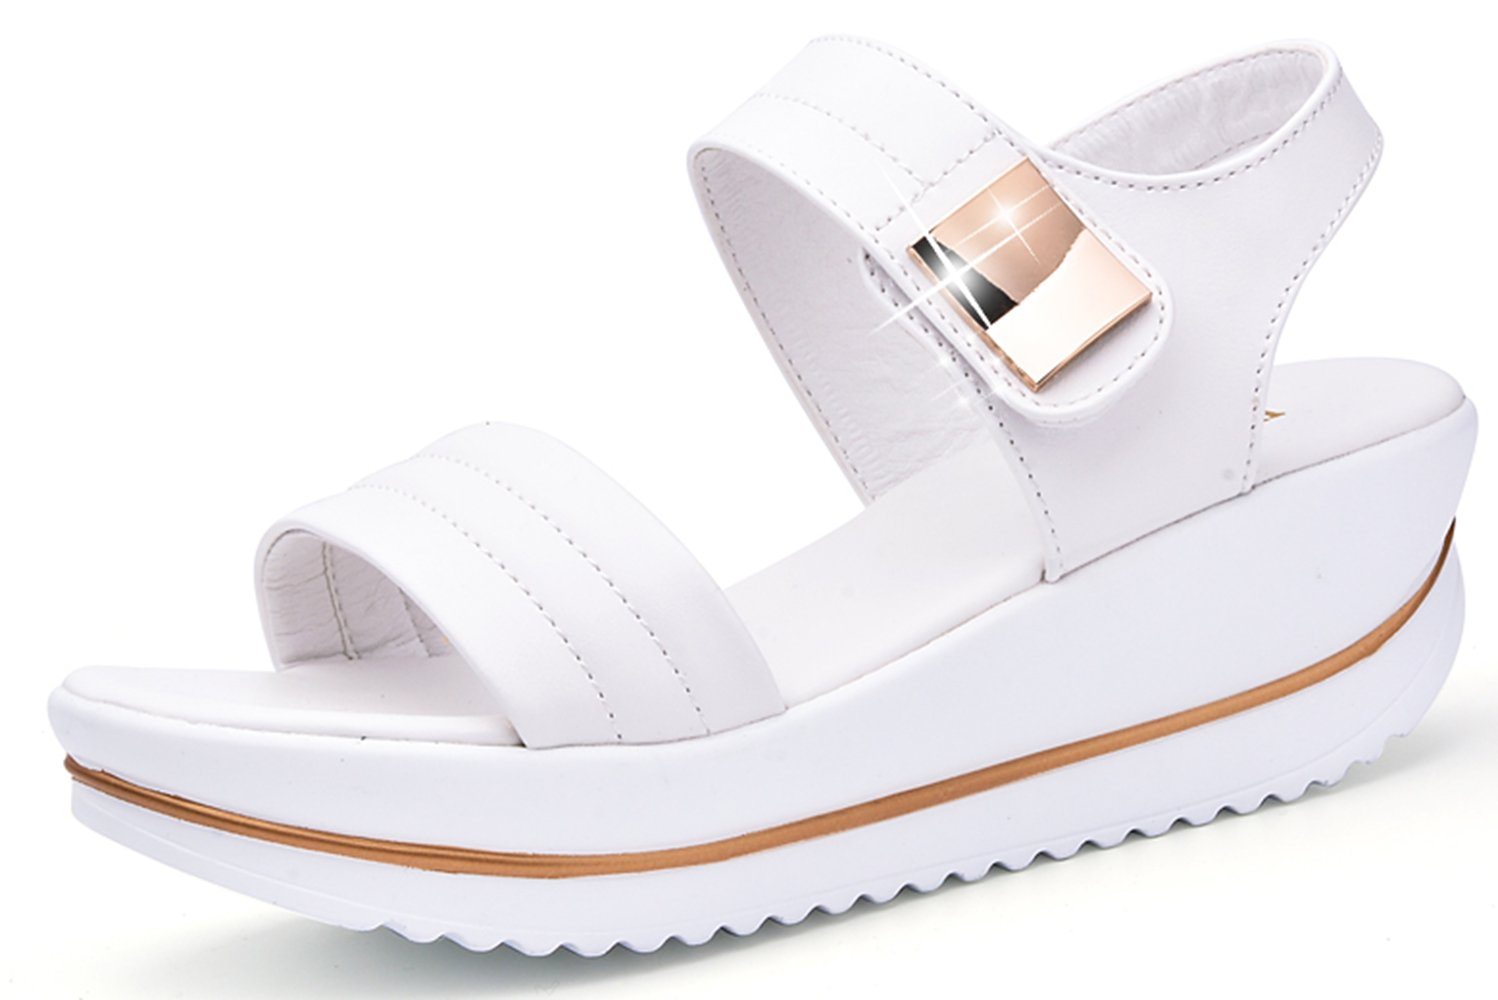 YZHYXS Womens Platform Sandals for 2018 Summer White Shoes Fashion Comfort Ladies Walking Sandal Size 9 (825 White 42)